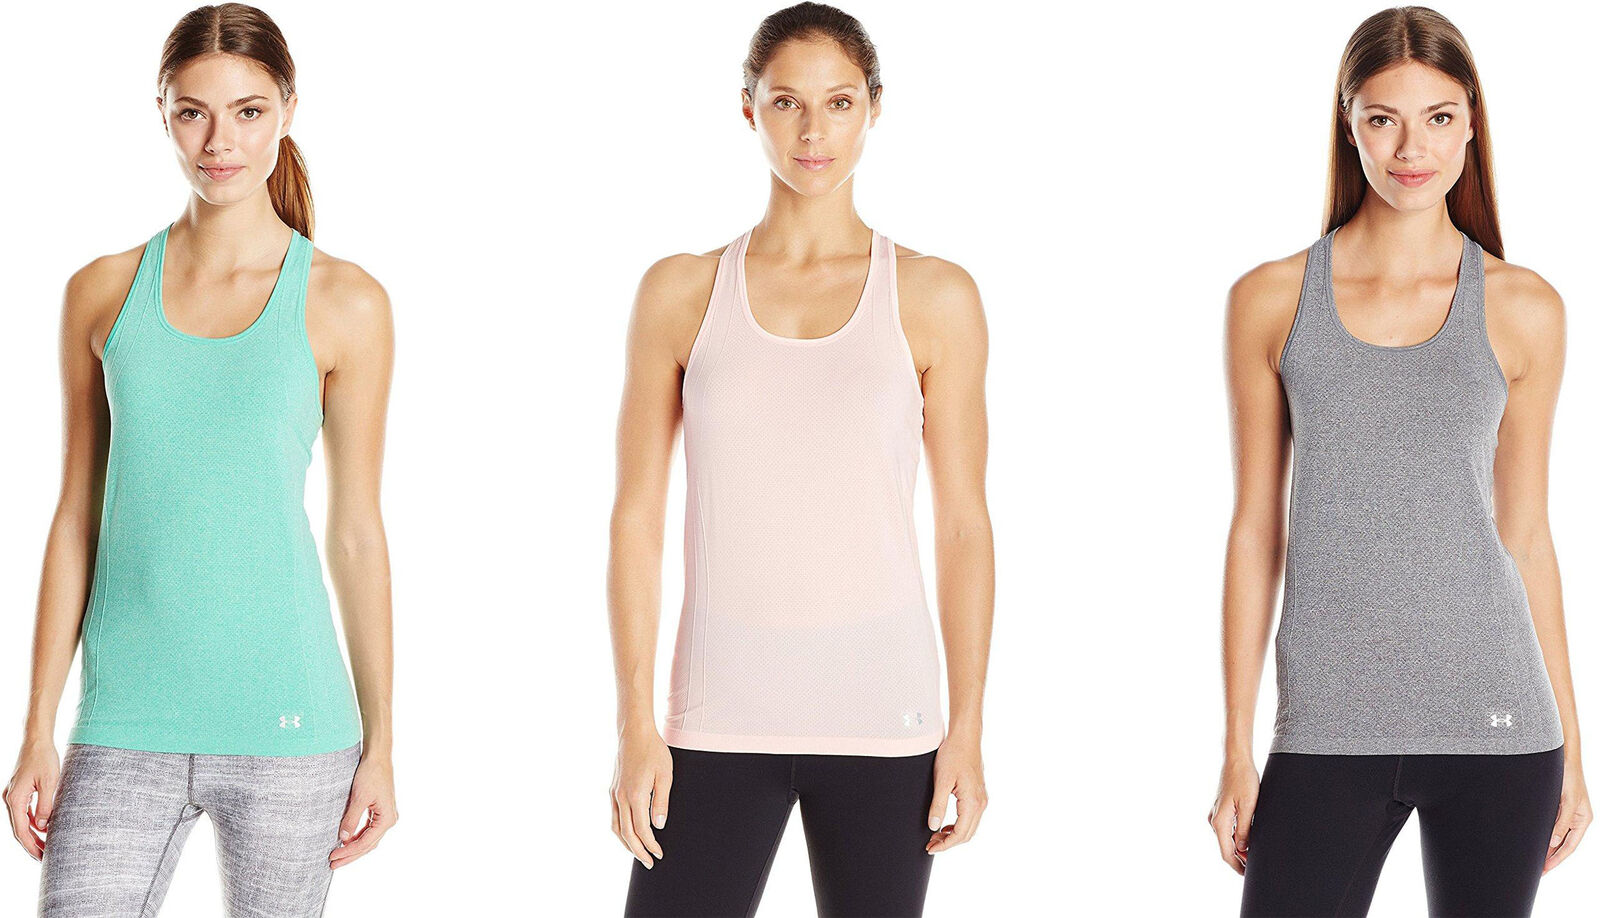 ee9be06a604aa Details about Under Armour Women s Threadborne Seamless Heathered Tank